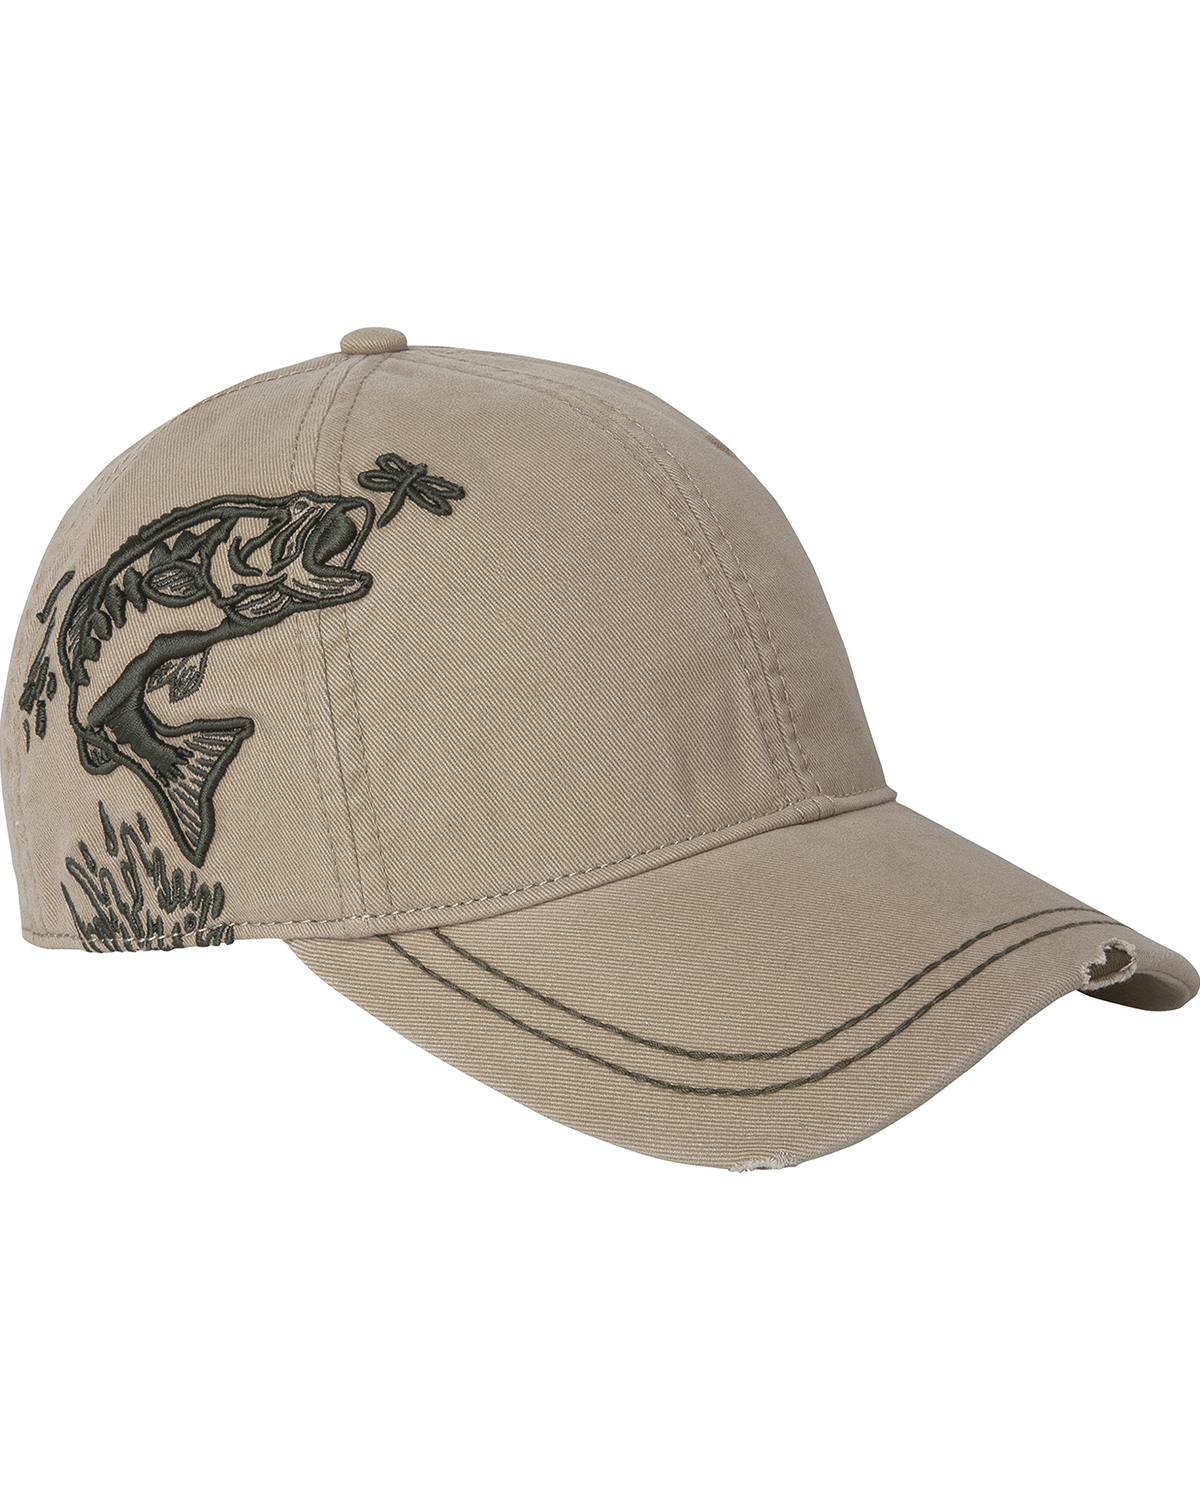 Men's 3-D Wildlife Cap